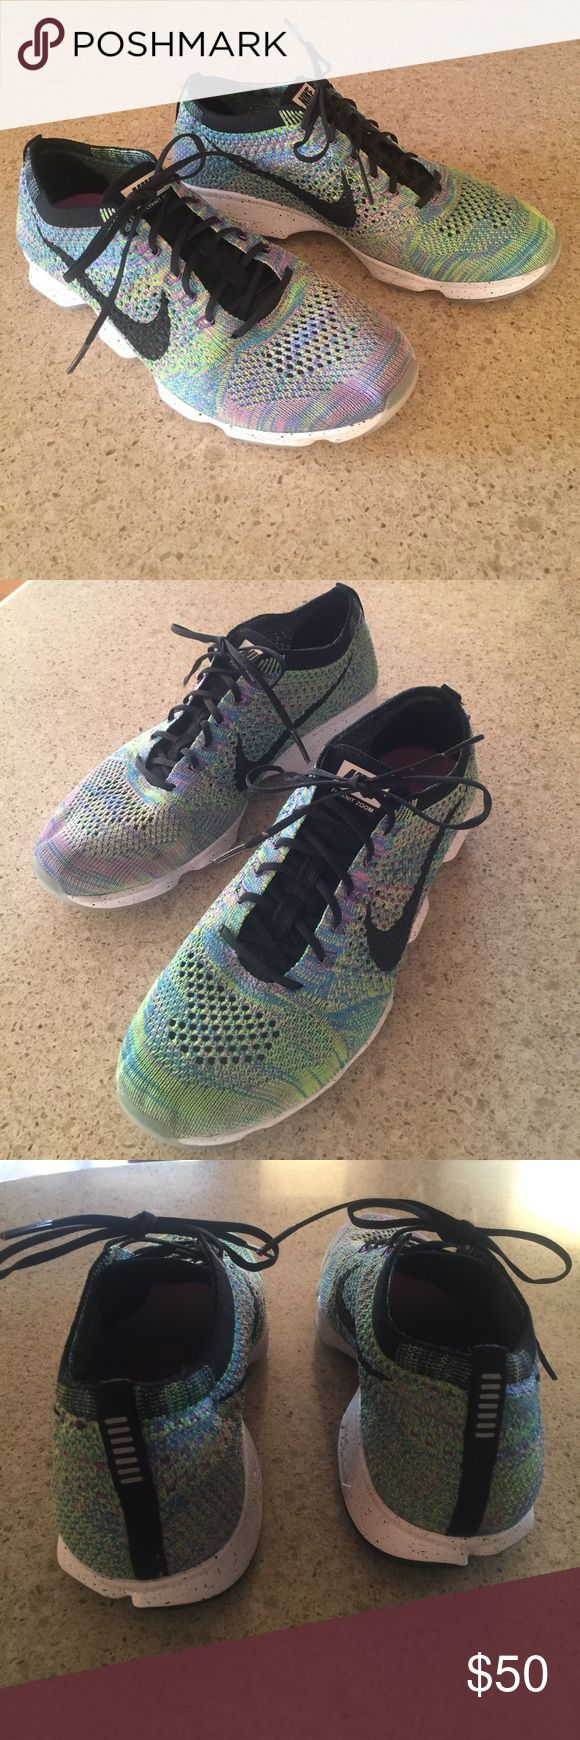 Women's 8.5 Nike Shoes Fly Knit Zoom Agility Womens Nike Shoes Size 8.5. Brand new condition. Worn once. Nike Flyknit Zoom Agility. Nike Shoes Athletic Shoes